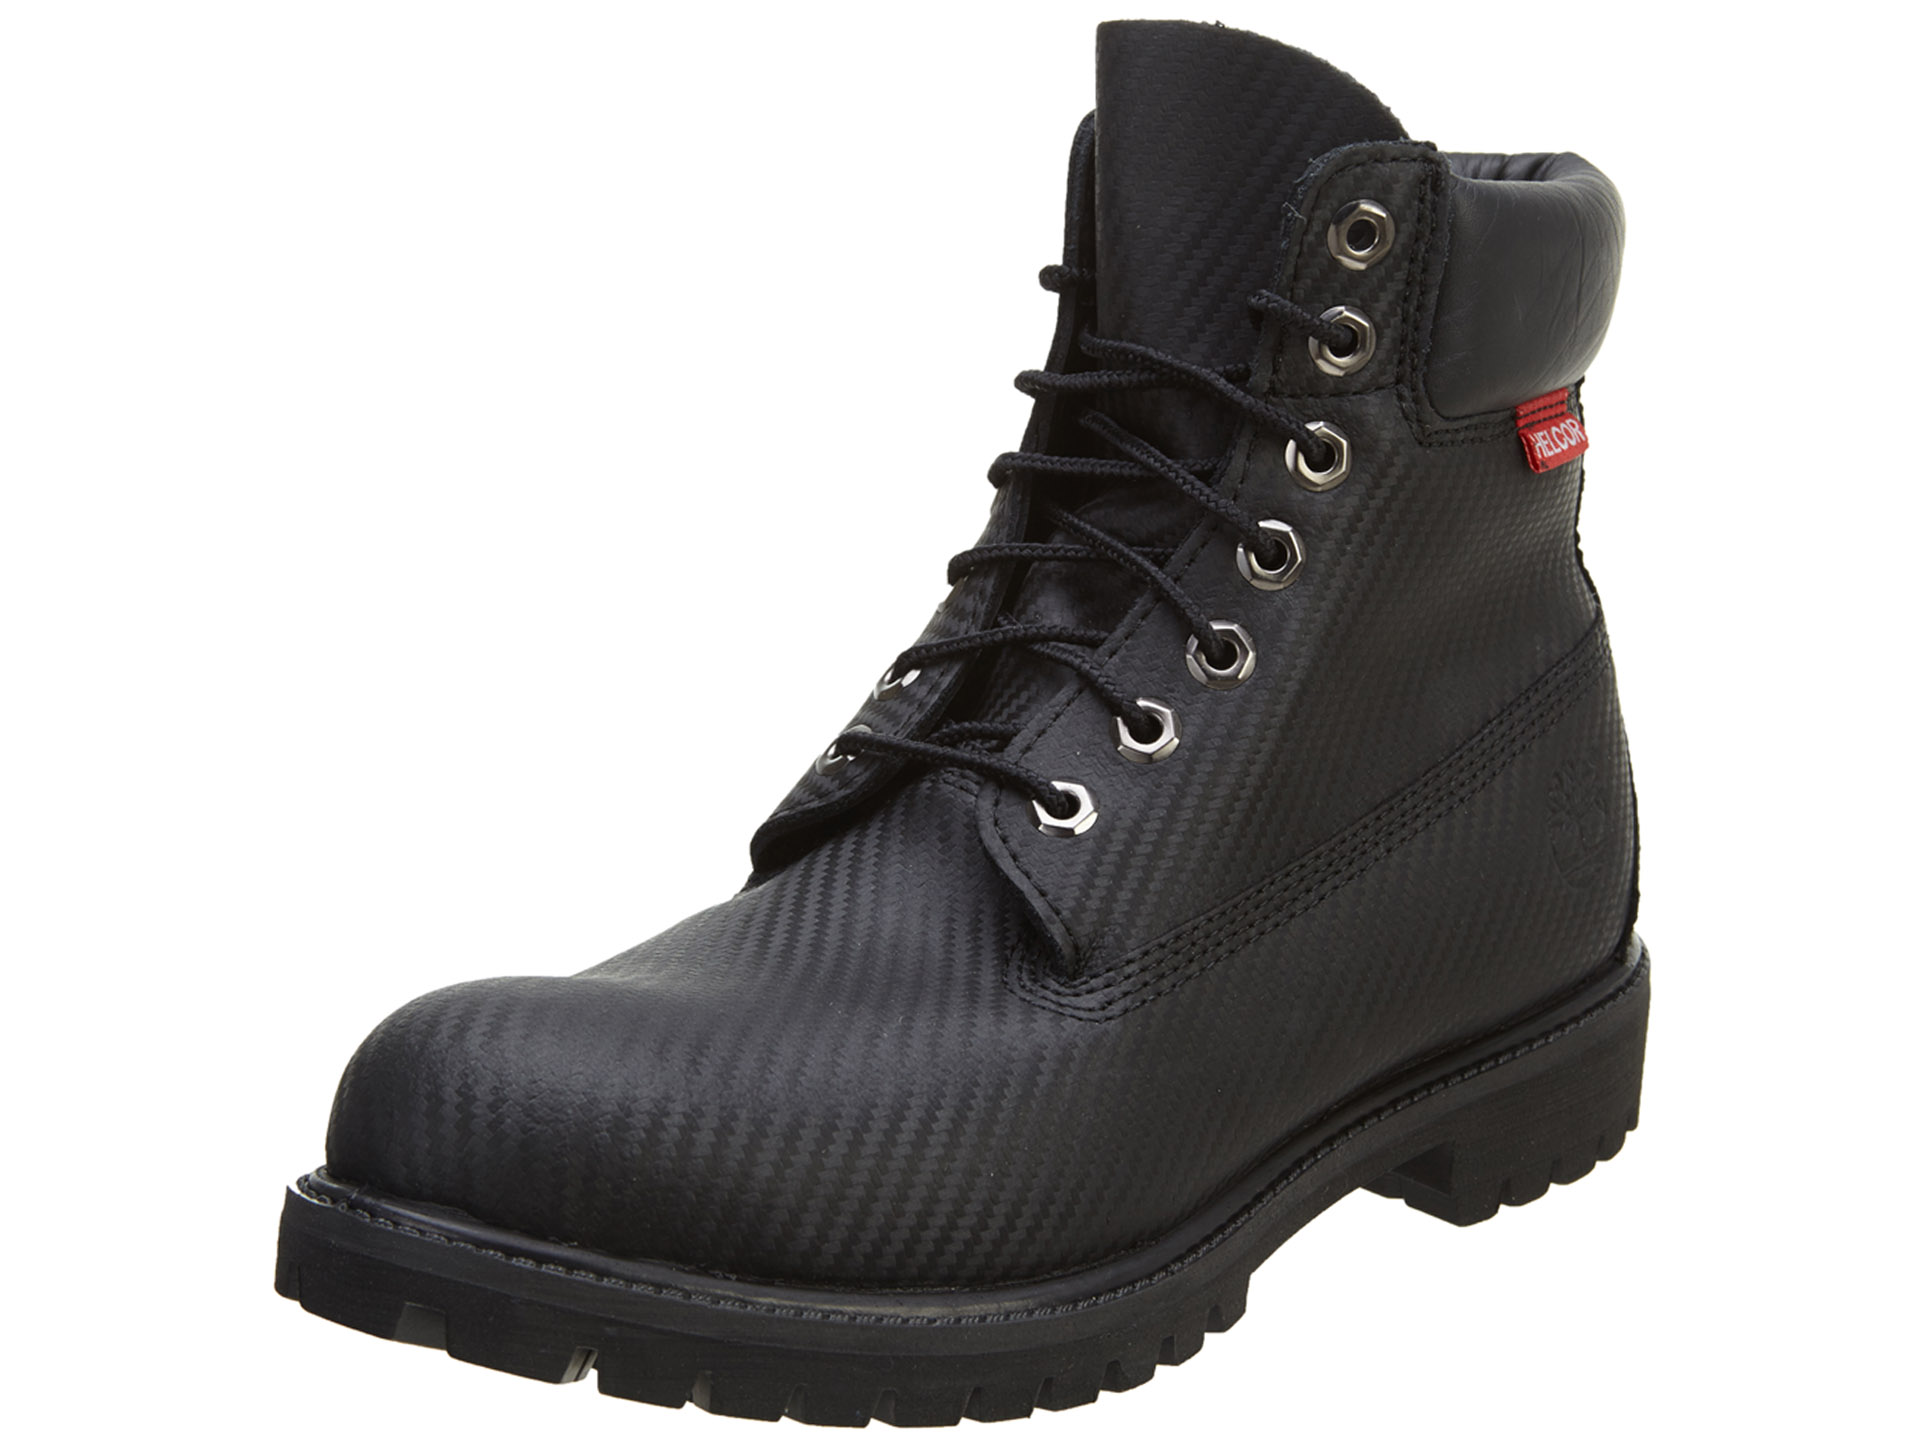 Timberland Icon 6-Inch Premium Helcor Waterproof Black Mens Boot 6605A Size 13 by Timberland